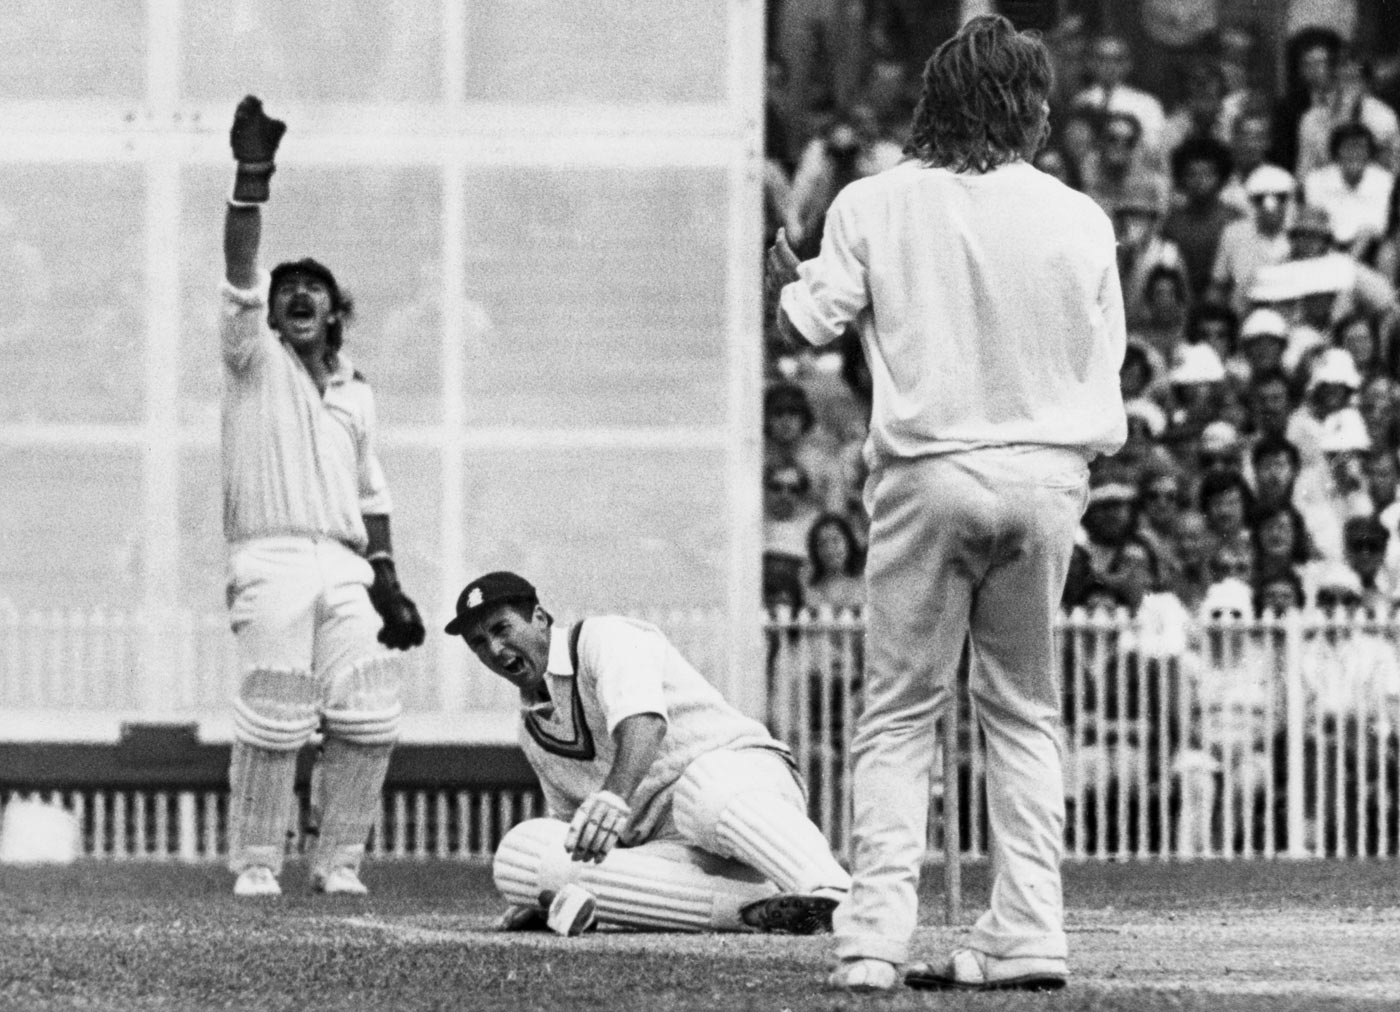 The slinger from hell: Jeff Thomson was the consensus candidate for the most feared fast bowler of his era